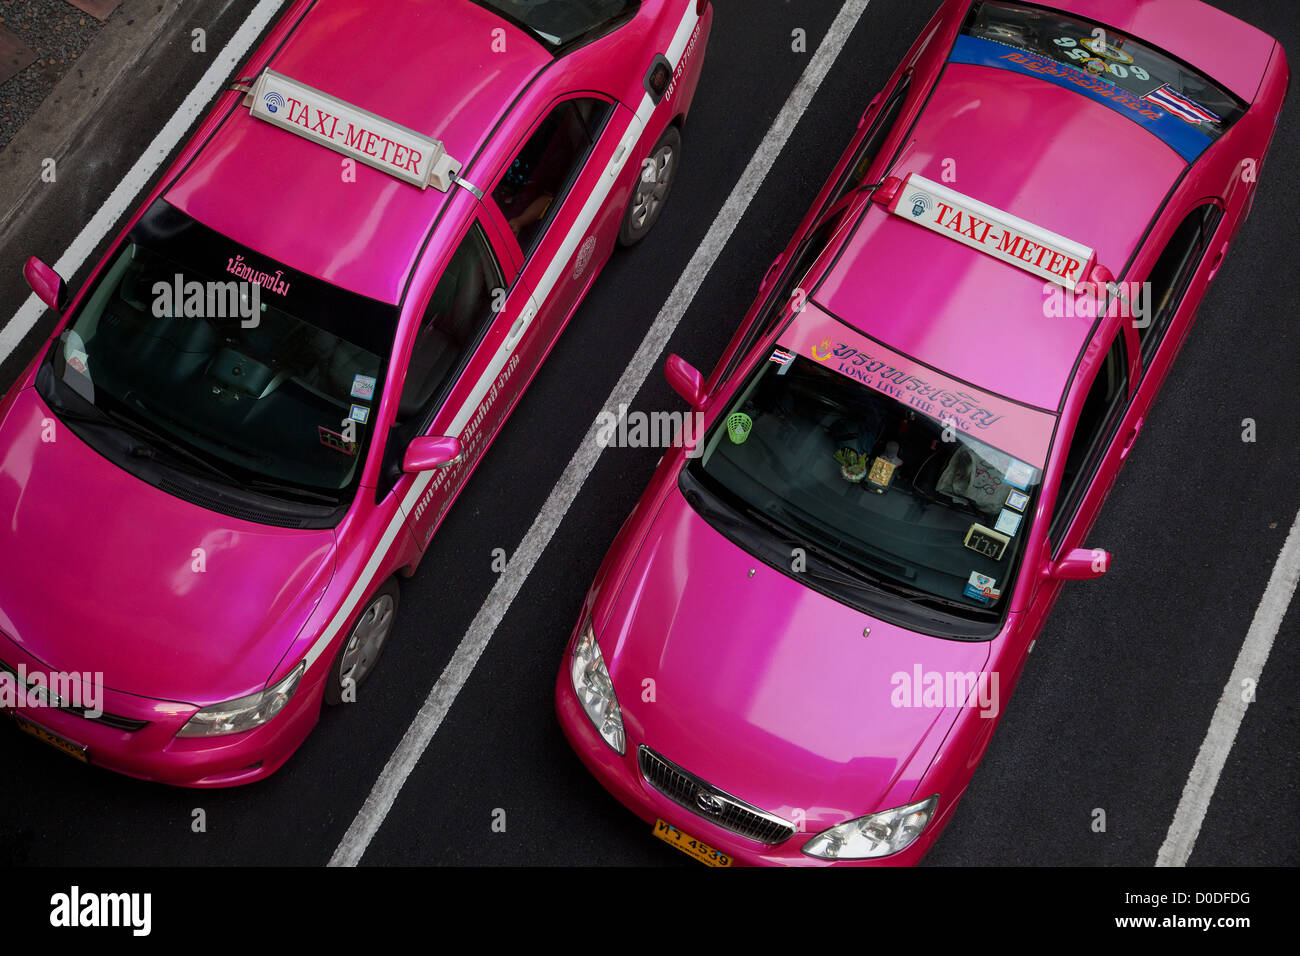 METER TAXIS THE CITY'S OFFICIAL PINK TAXIS EQUIPPED WITH A METER BANGKOK THAILAND - Stock Image